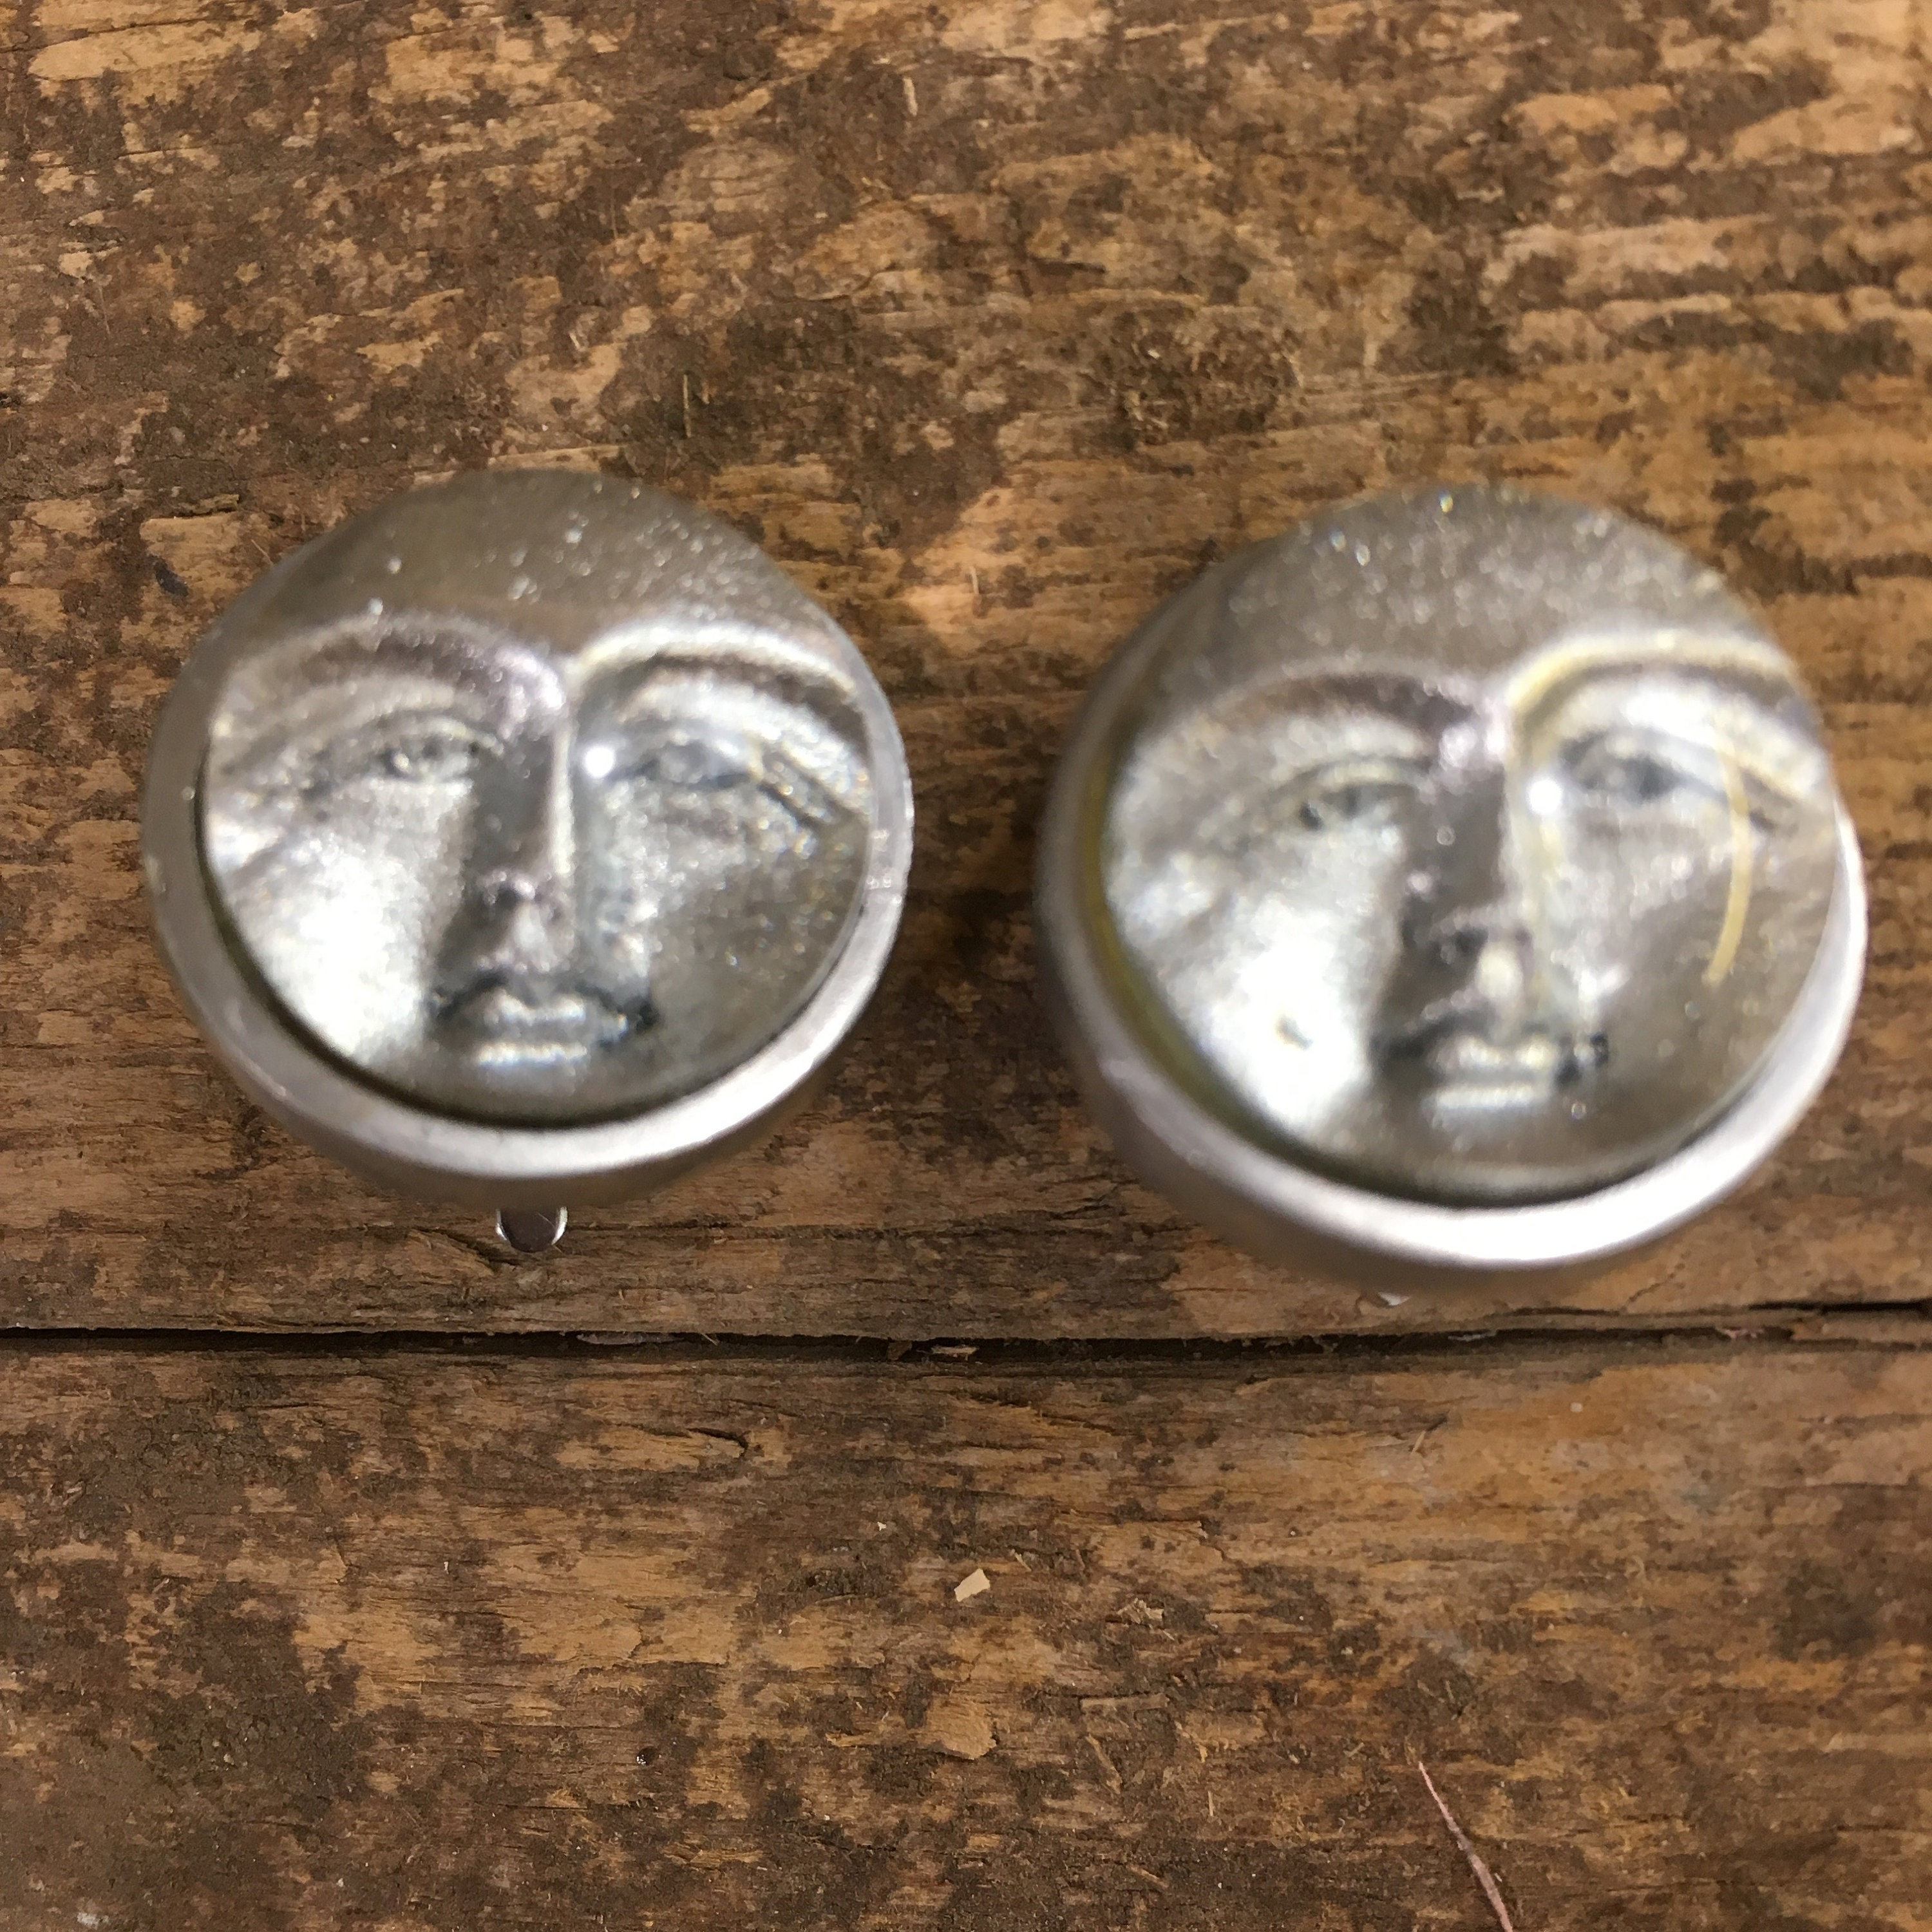 Unique vintage Moon face earrings, silver moon faced clip on